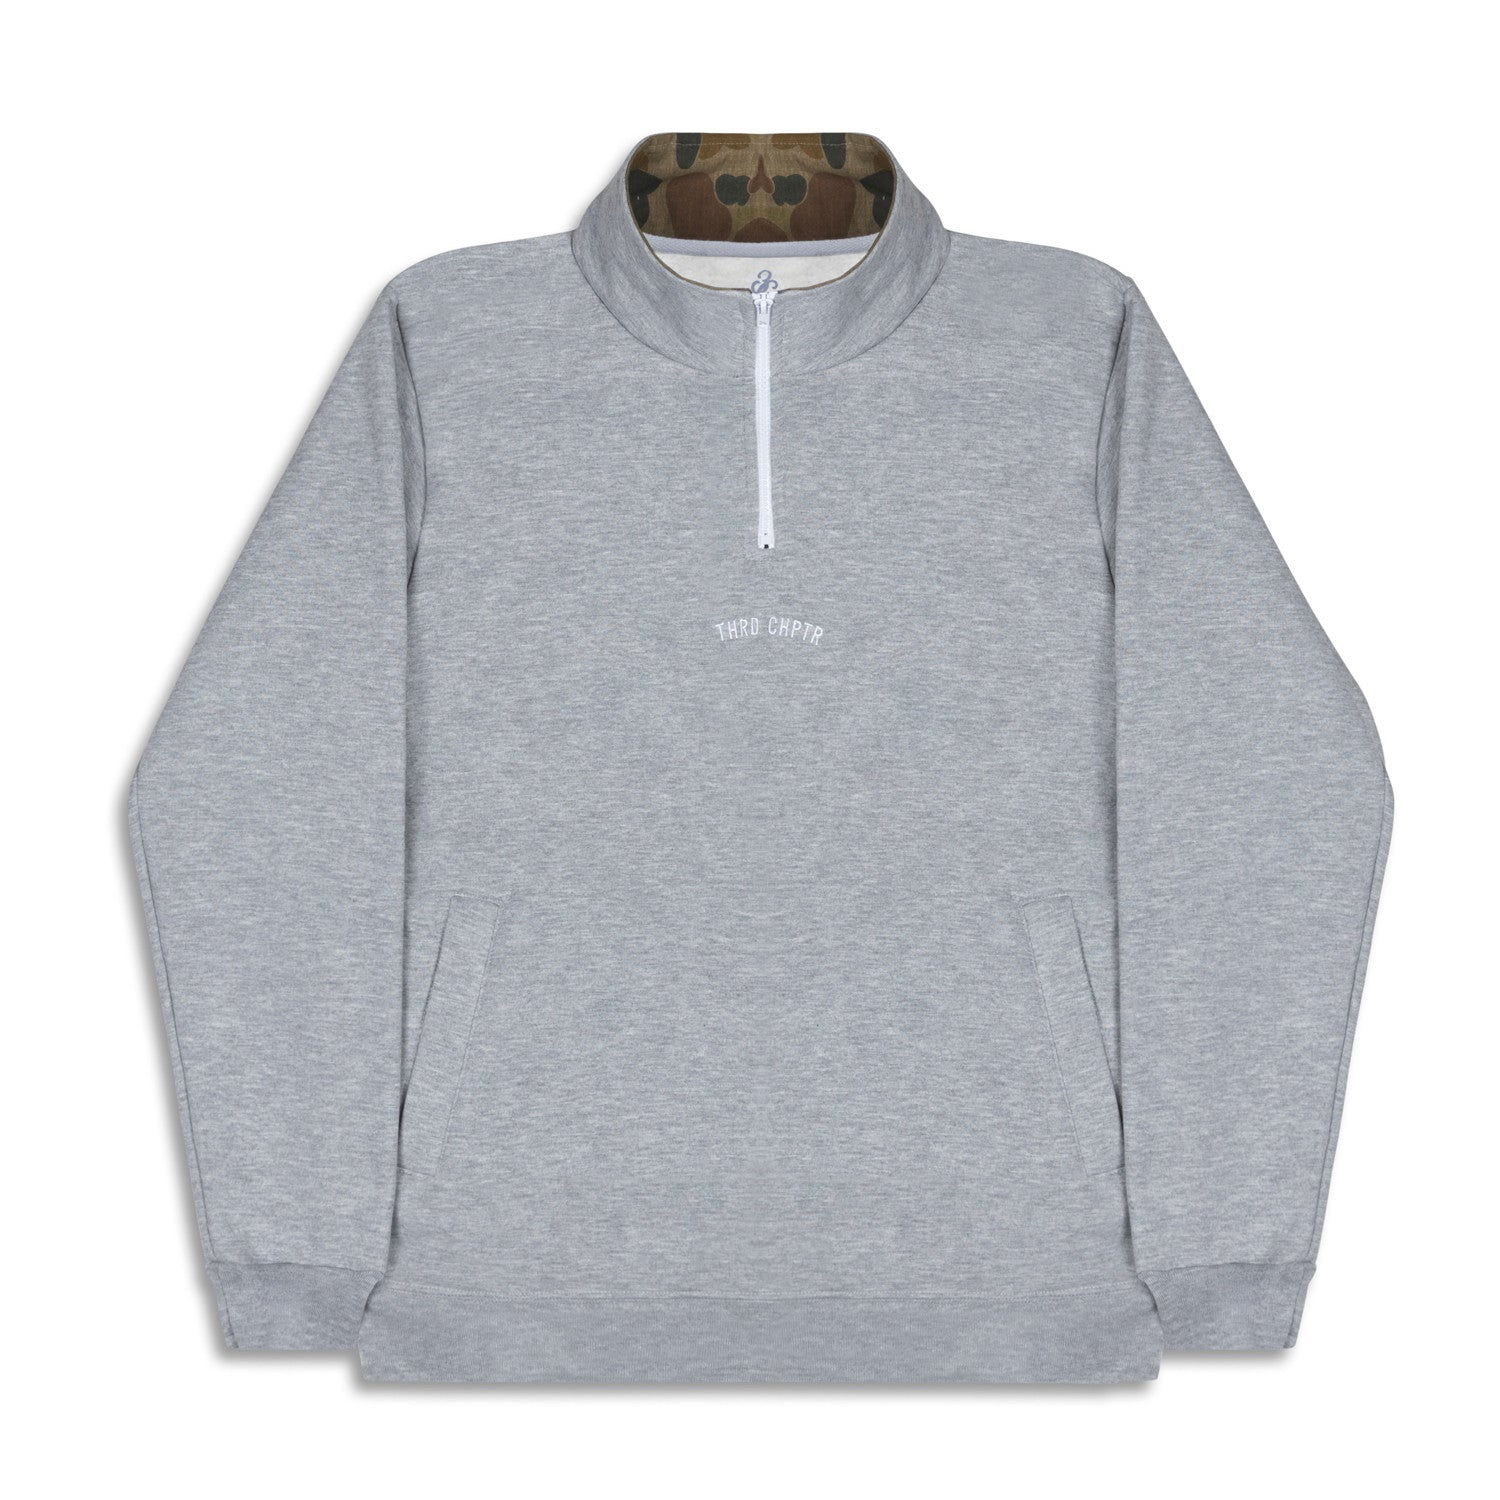 LowKey 1/4 Zip Sweater Grey